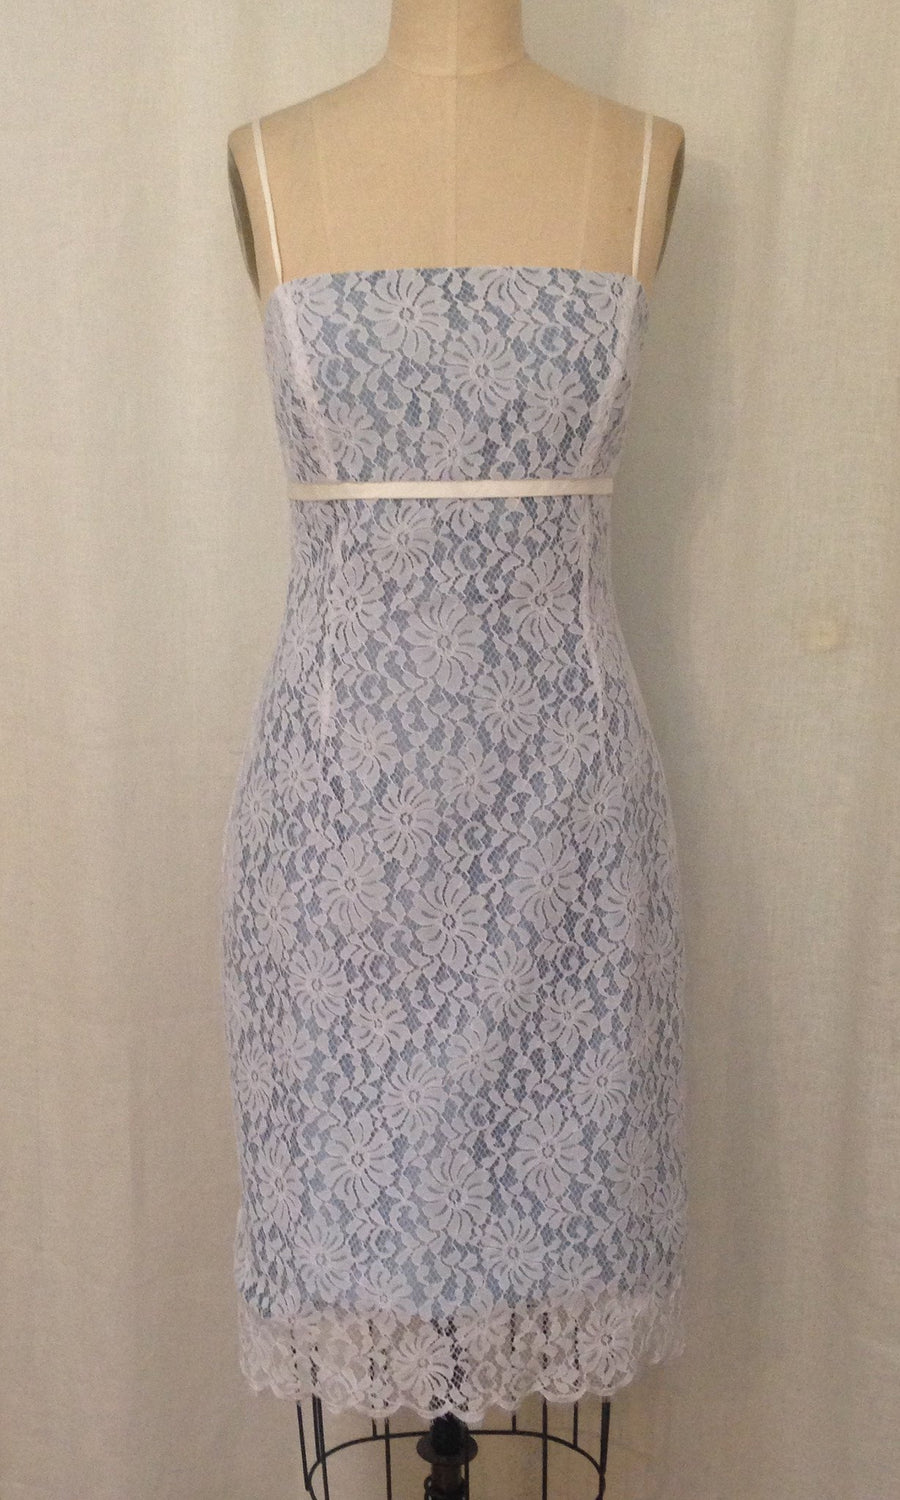 Lace Spaghetti Strap Fitted Dress, size X-small